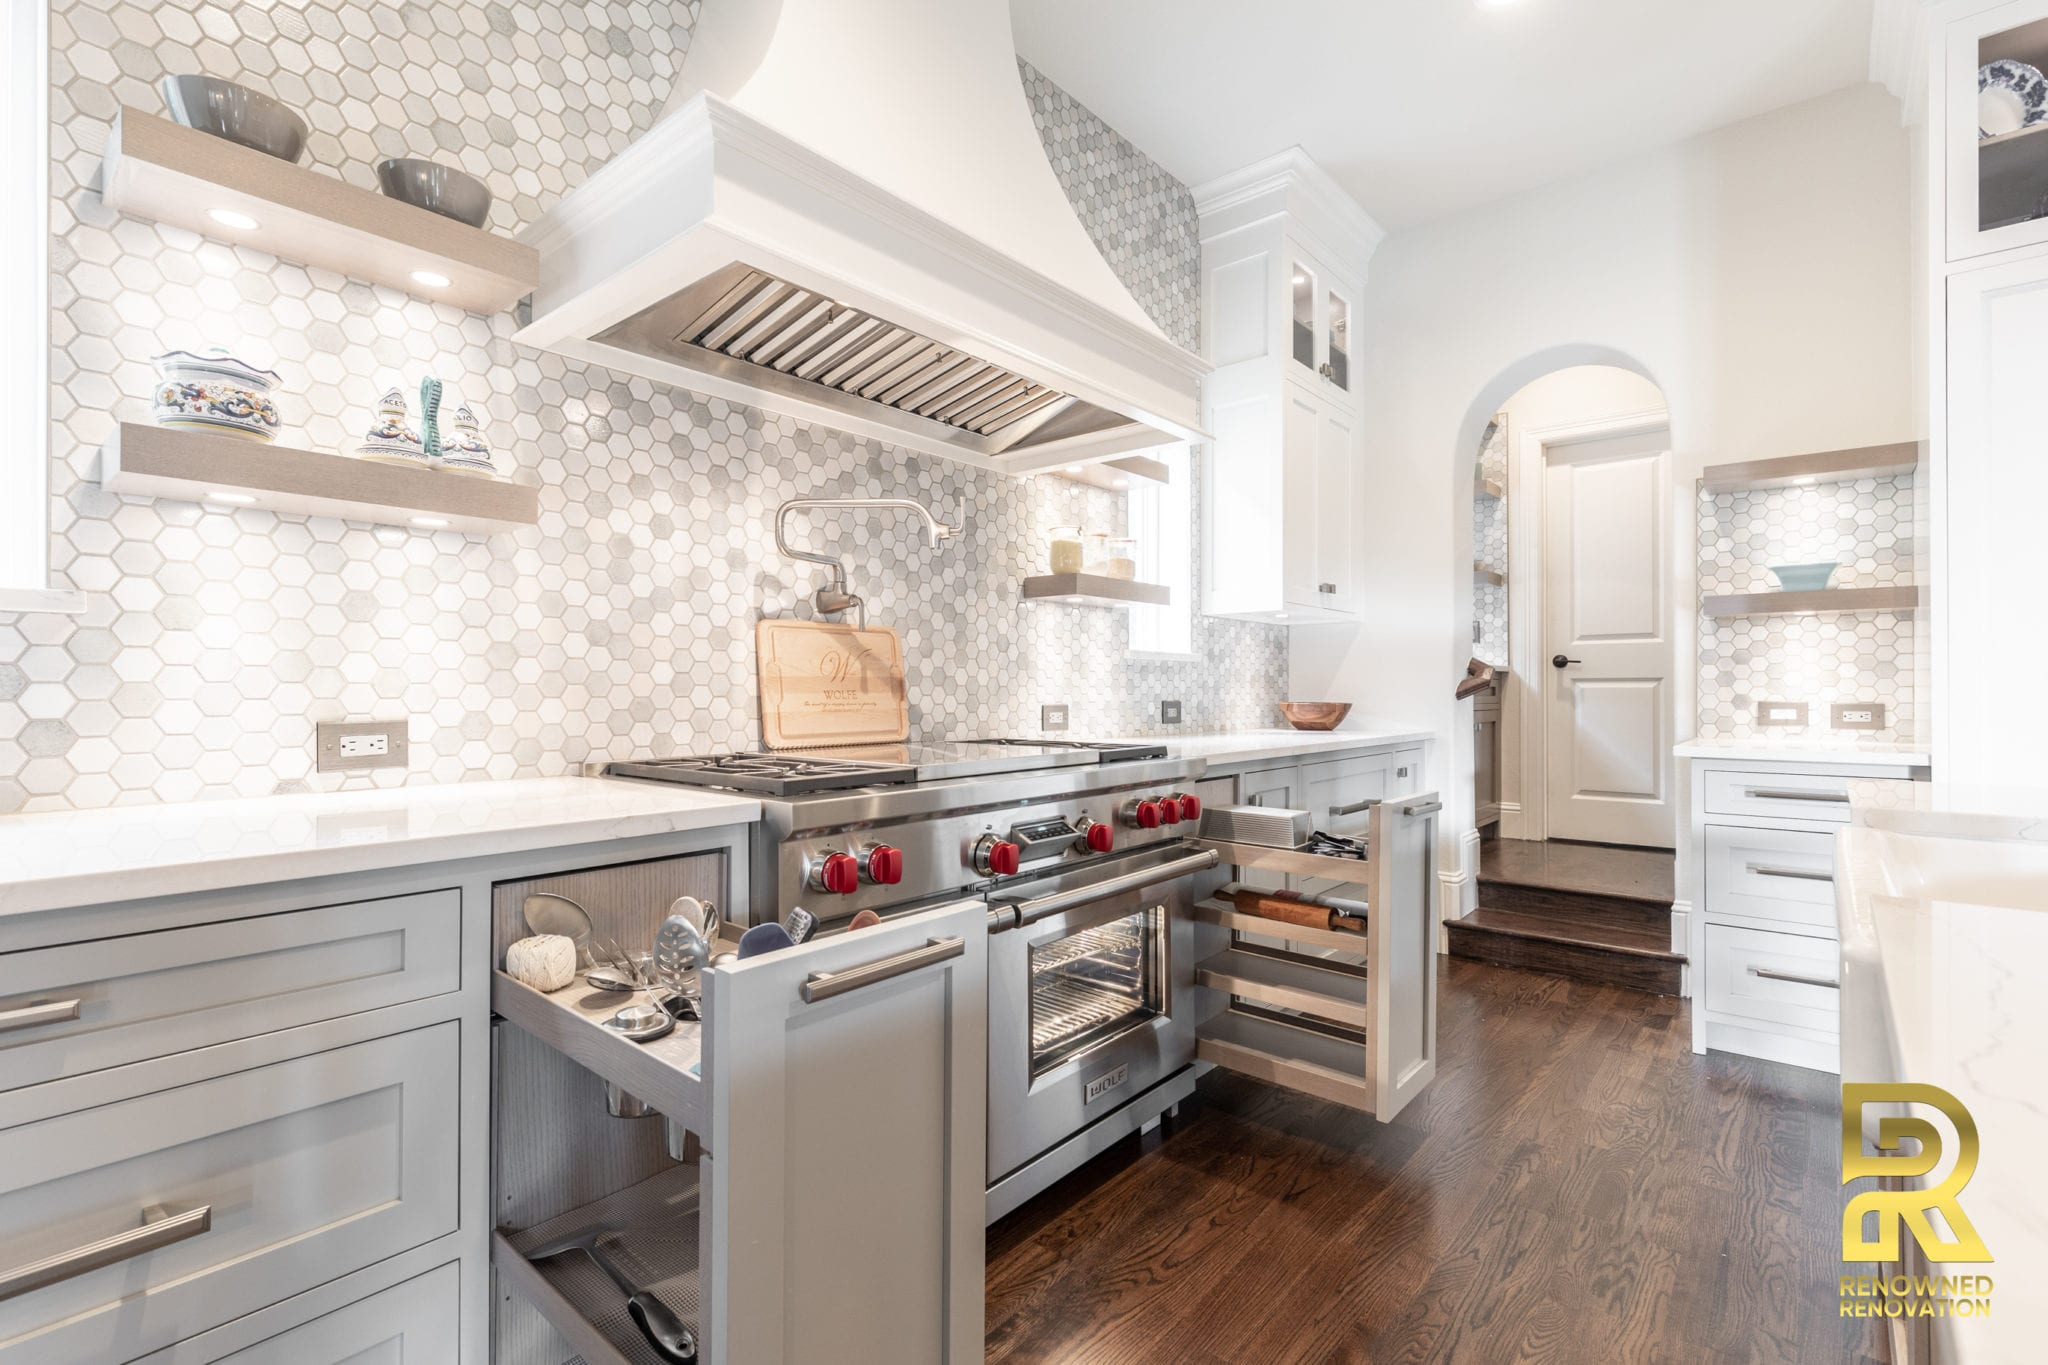 Custom-Kitchen-Cabinets-Designed-byRemodel-By-Renowned-Renovation-18